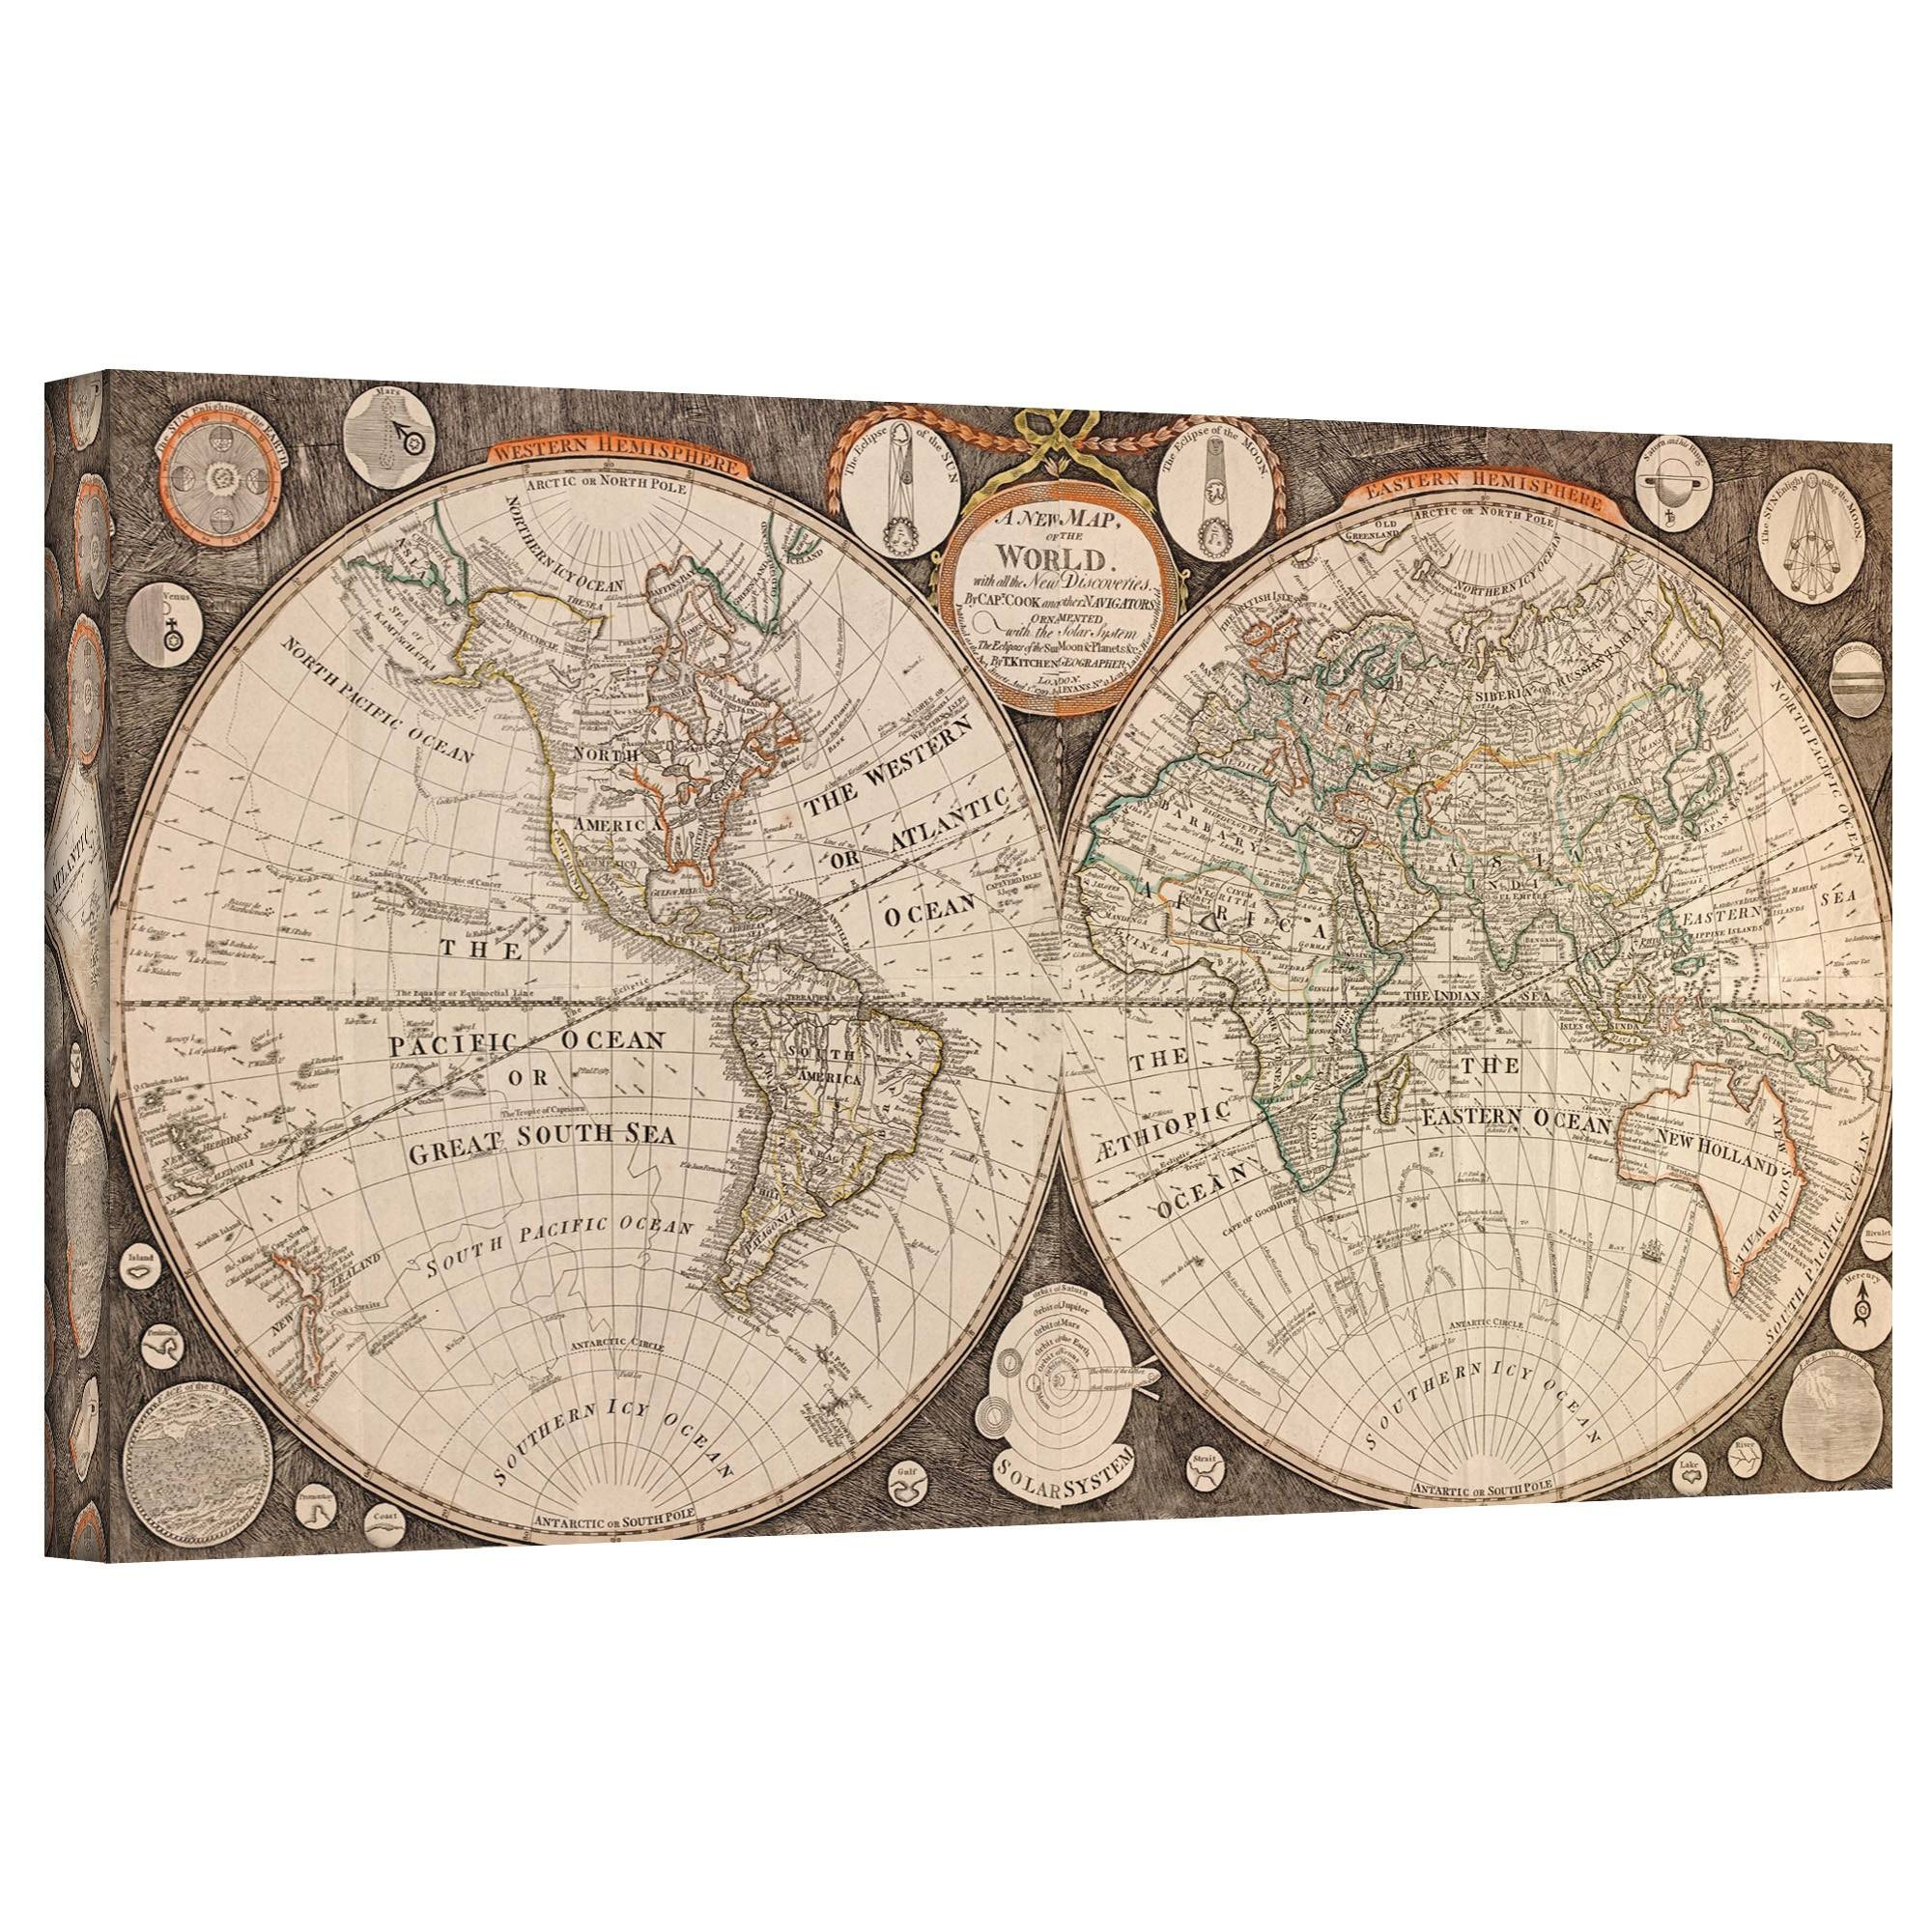 Wall Art Designs: Awesome Antique Map Wall Art Vintage Map Wall Pertaining To 2017 Antique Map Wall Art (View 20 of 20)